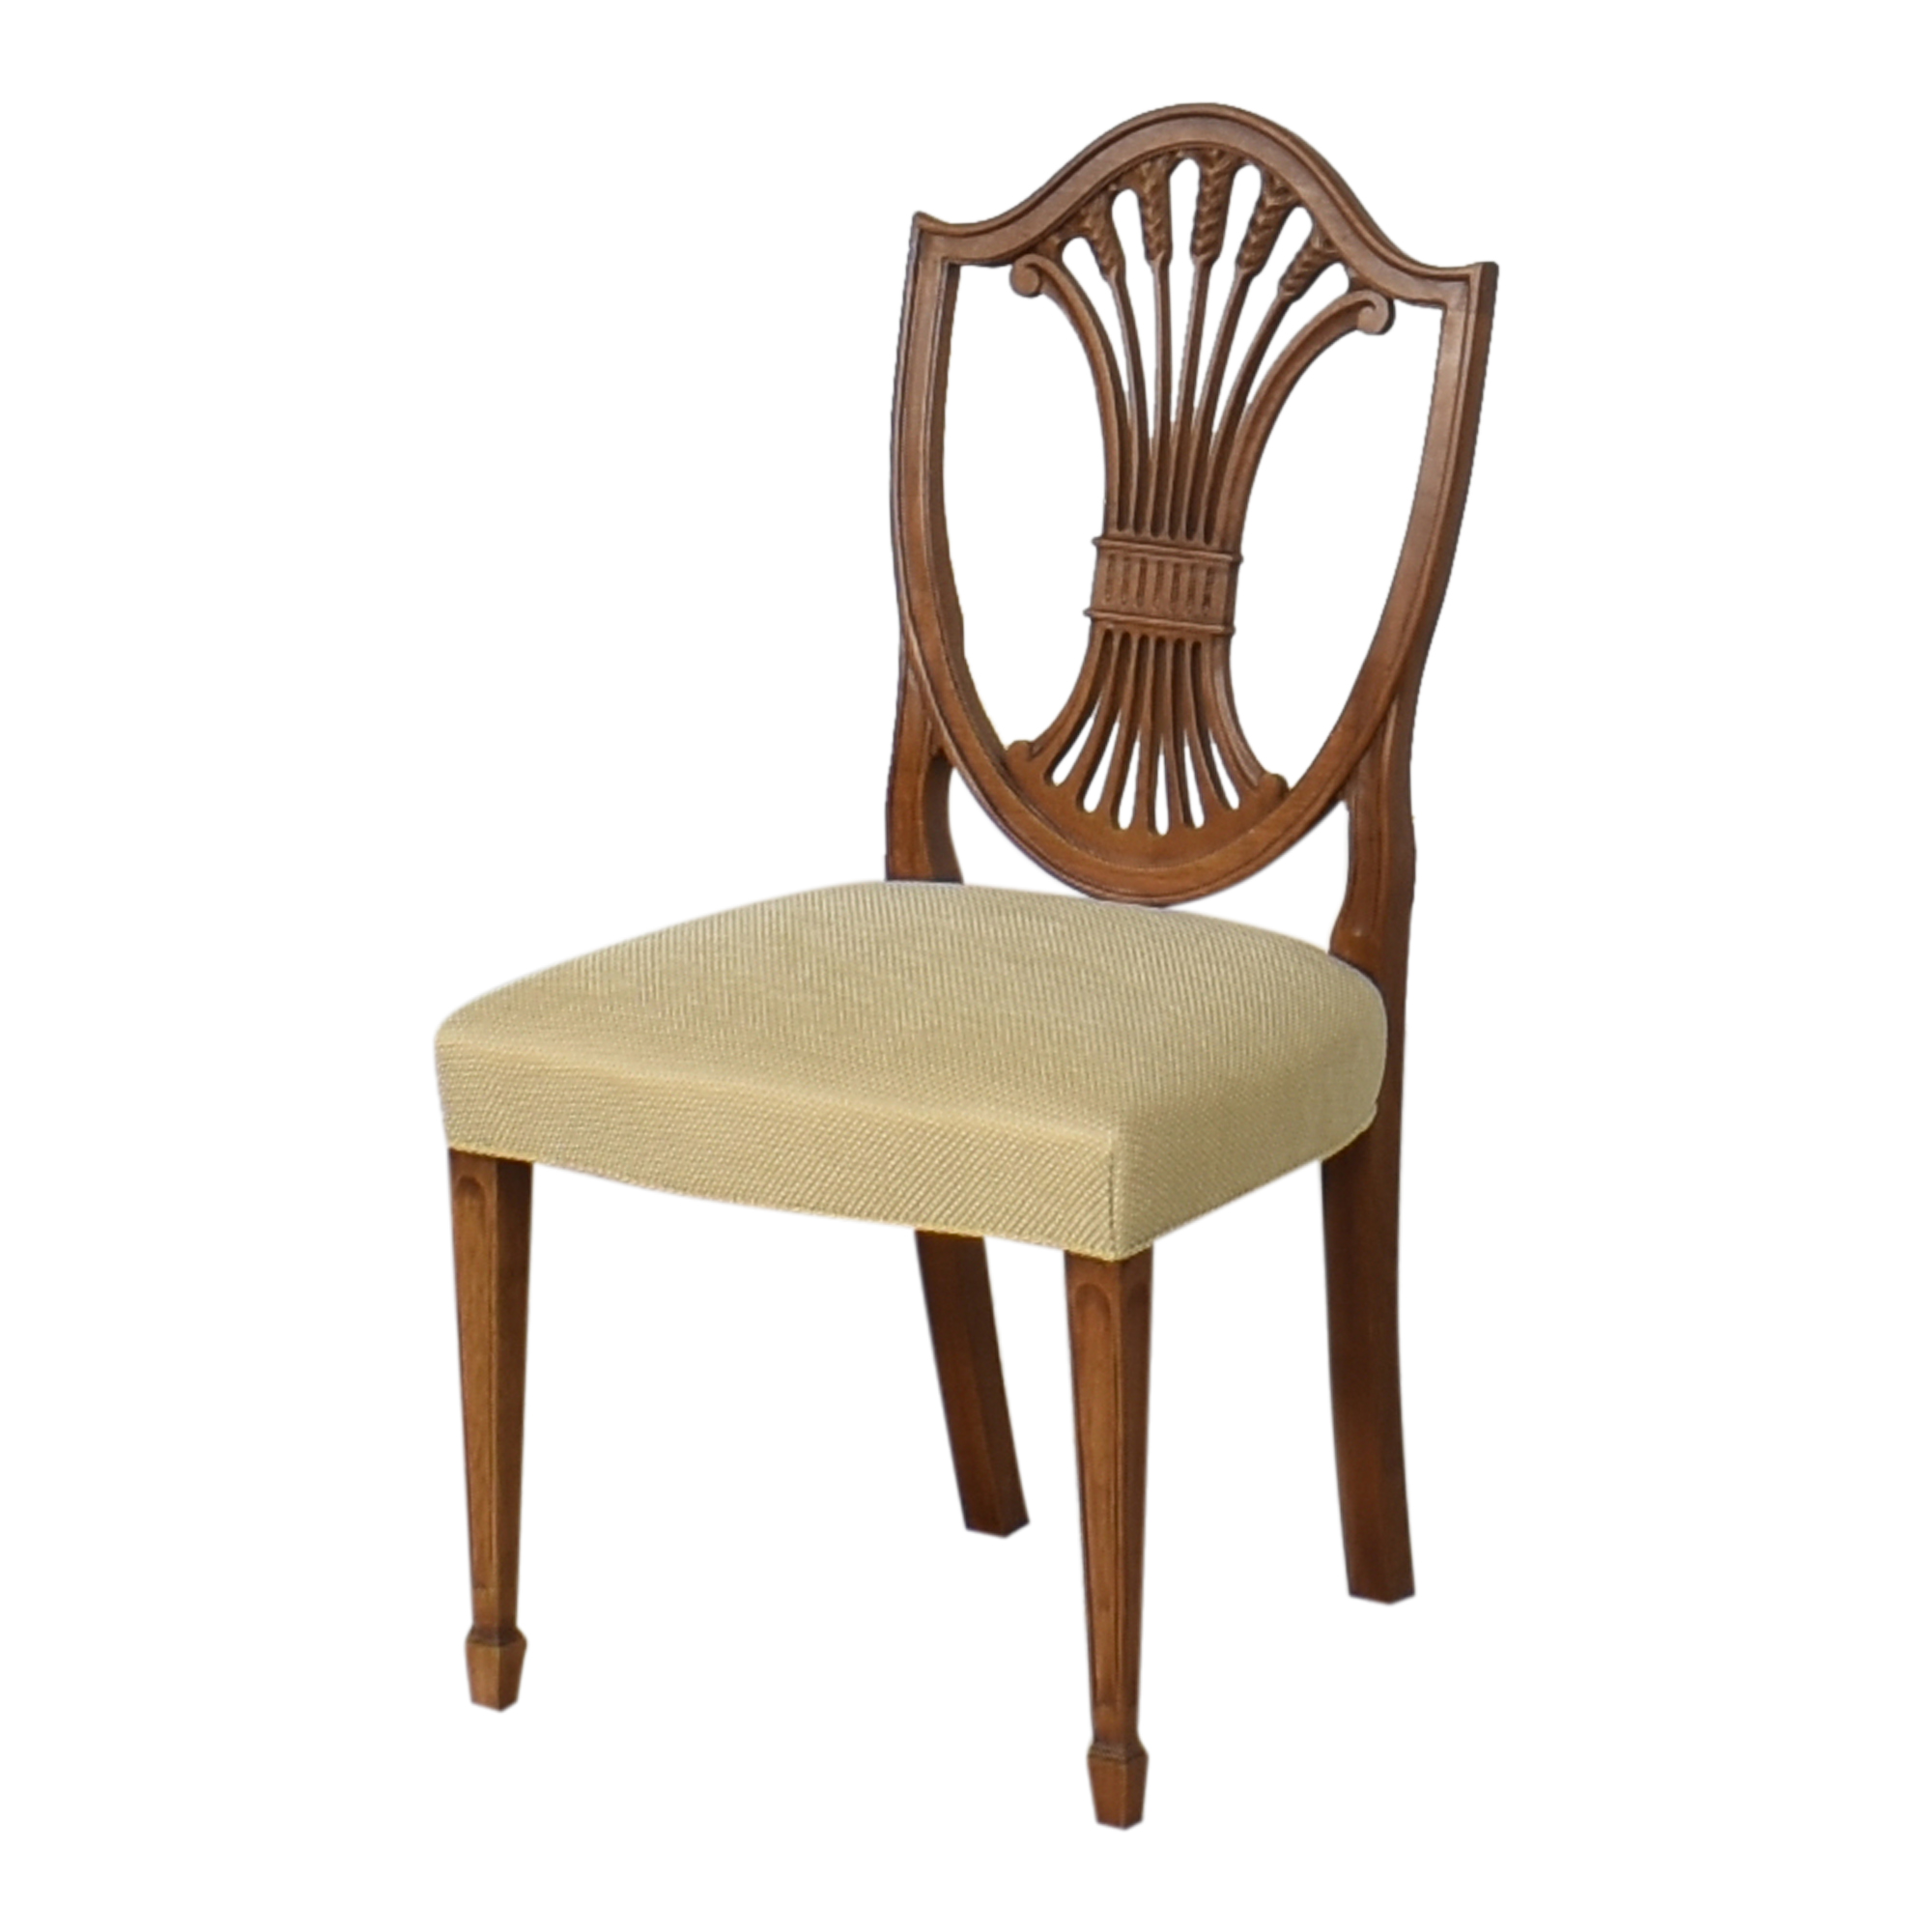 Stickley Furniture Stickley Furniture Monroe Place Dining Side Chairs coupon